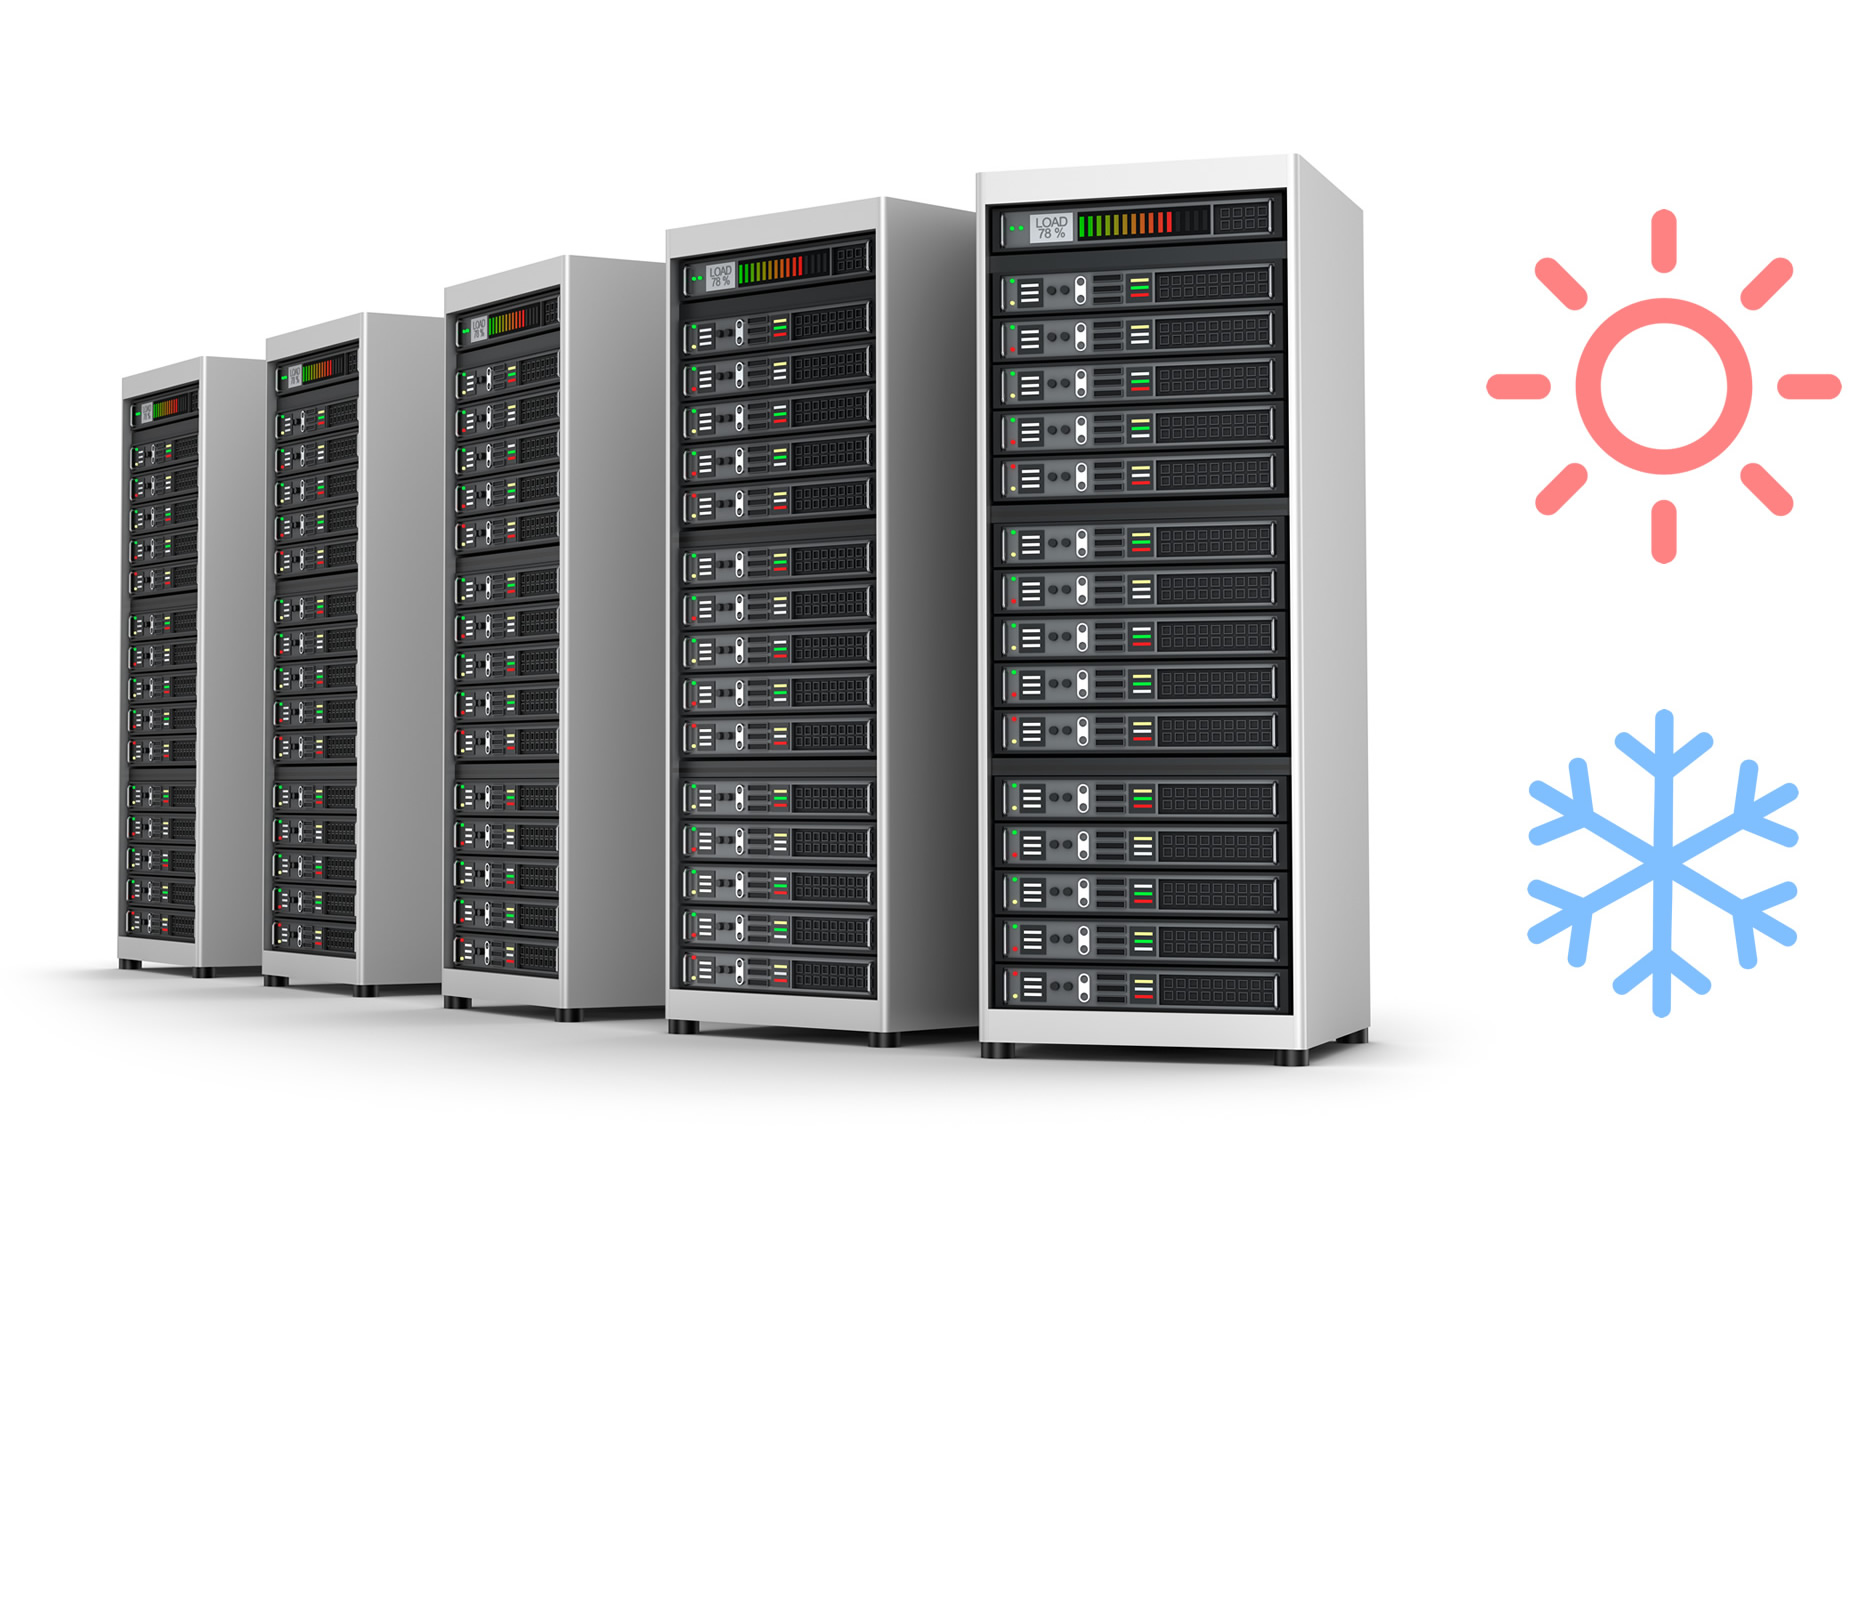 monitor-data-center-conditions-cooling